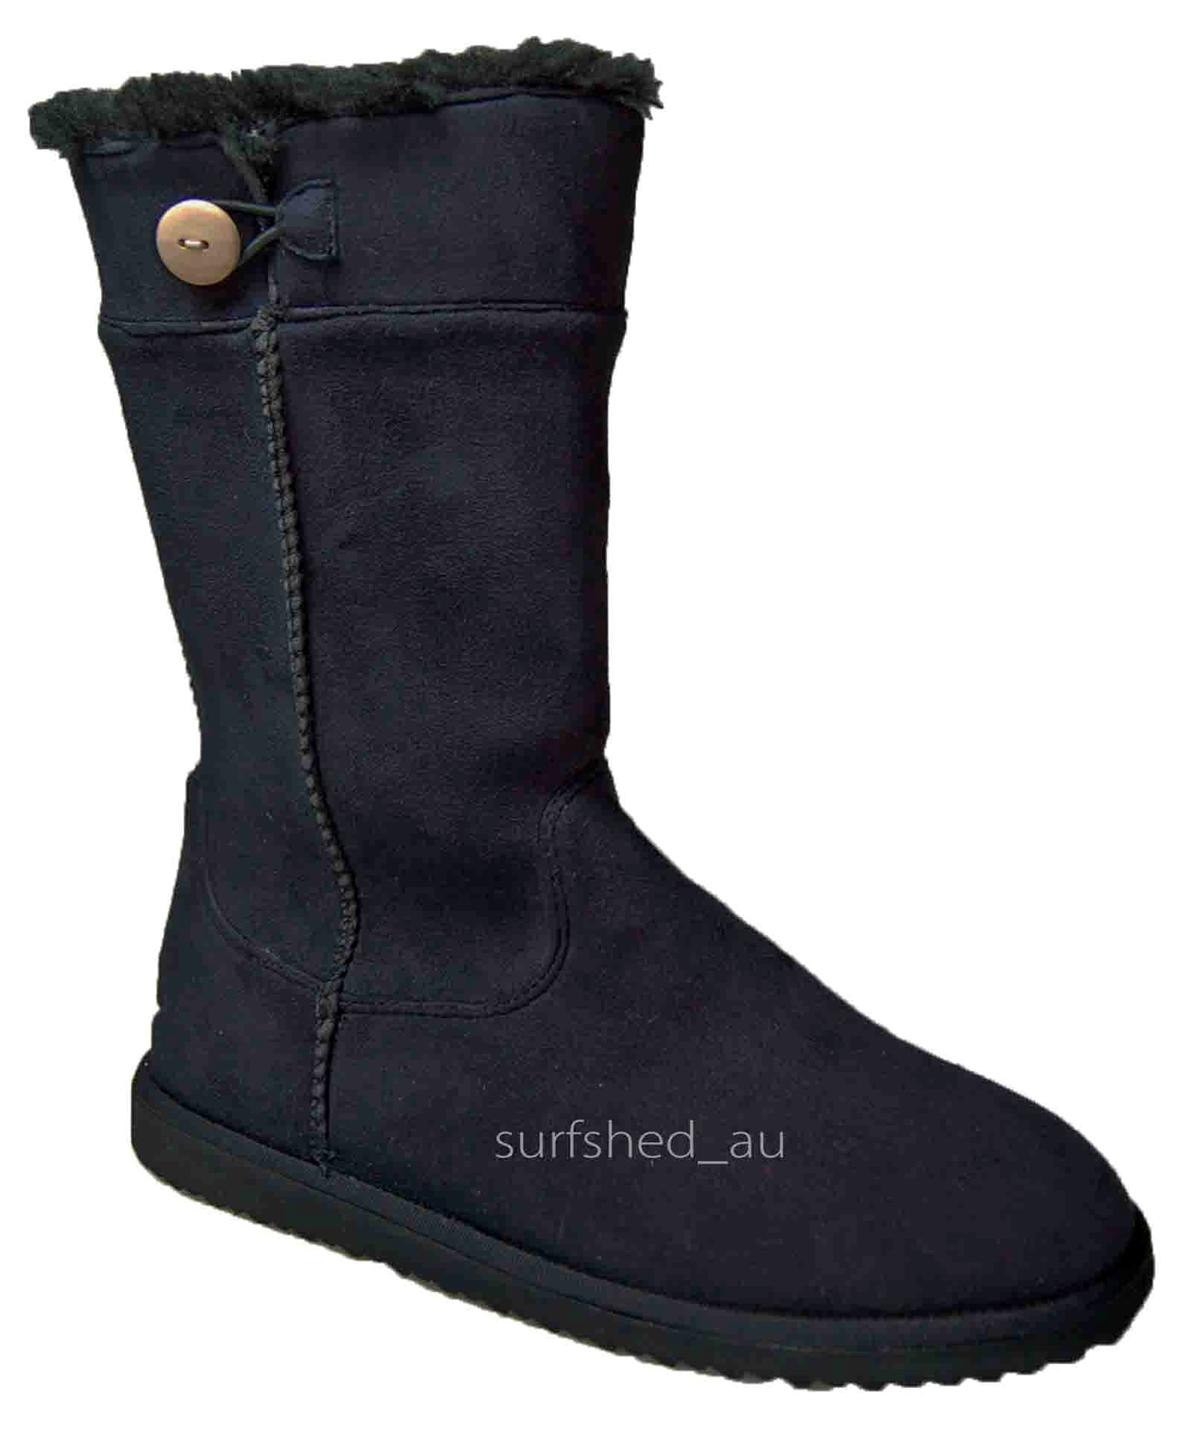 size 10 s rip curl powder boot 4 black womens ugg